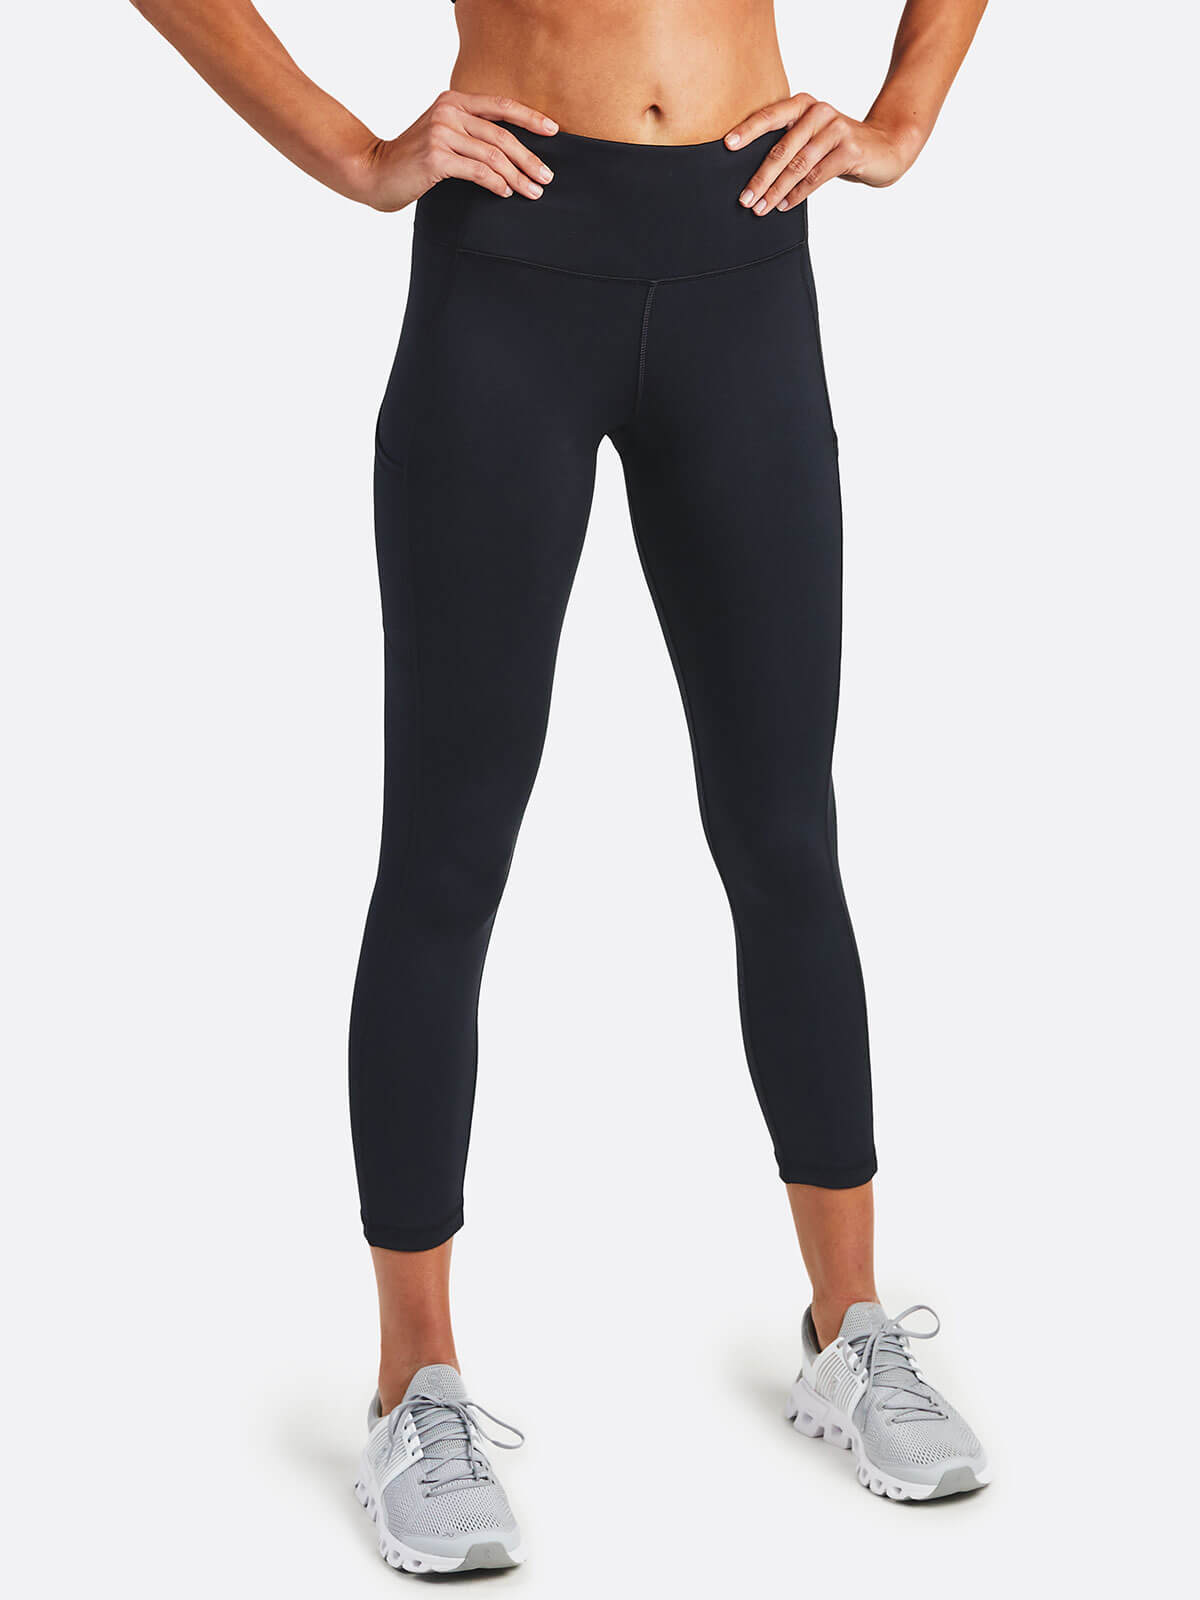 Women's Uptown High Rise 7/8 Pocket Legging (Black)(Kit)